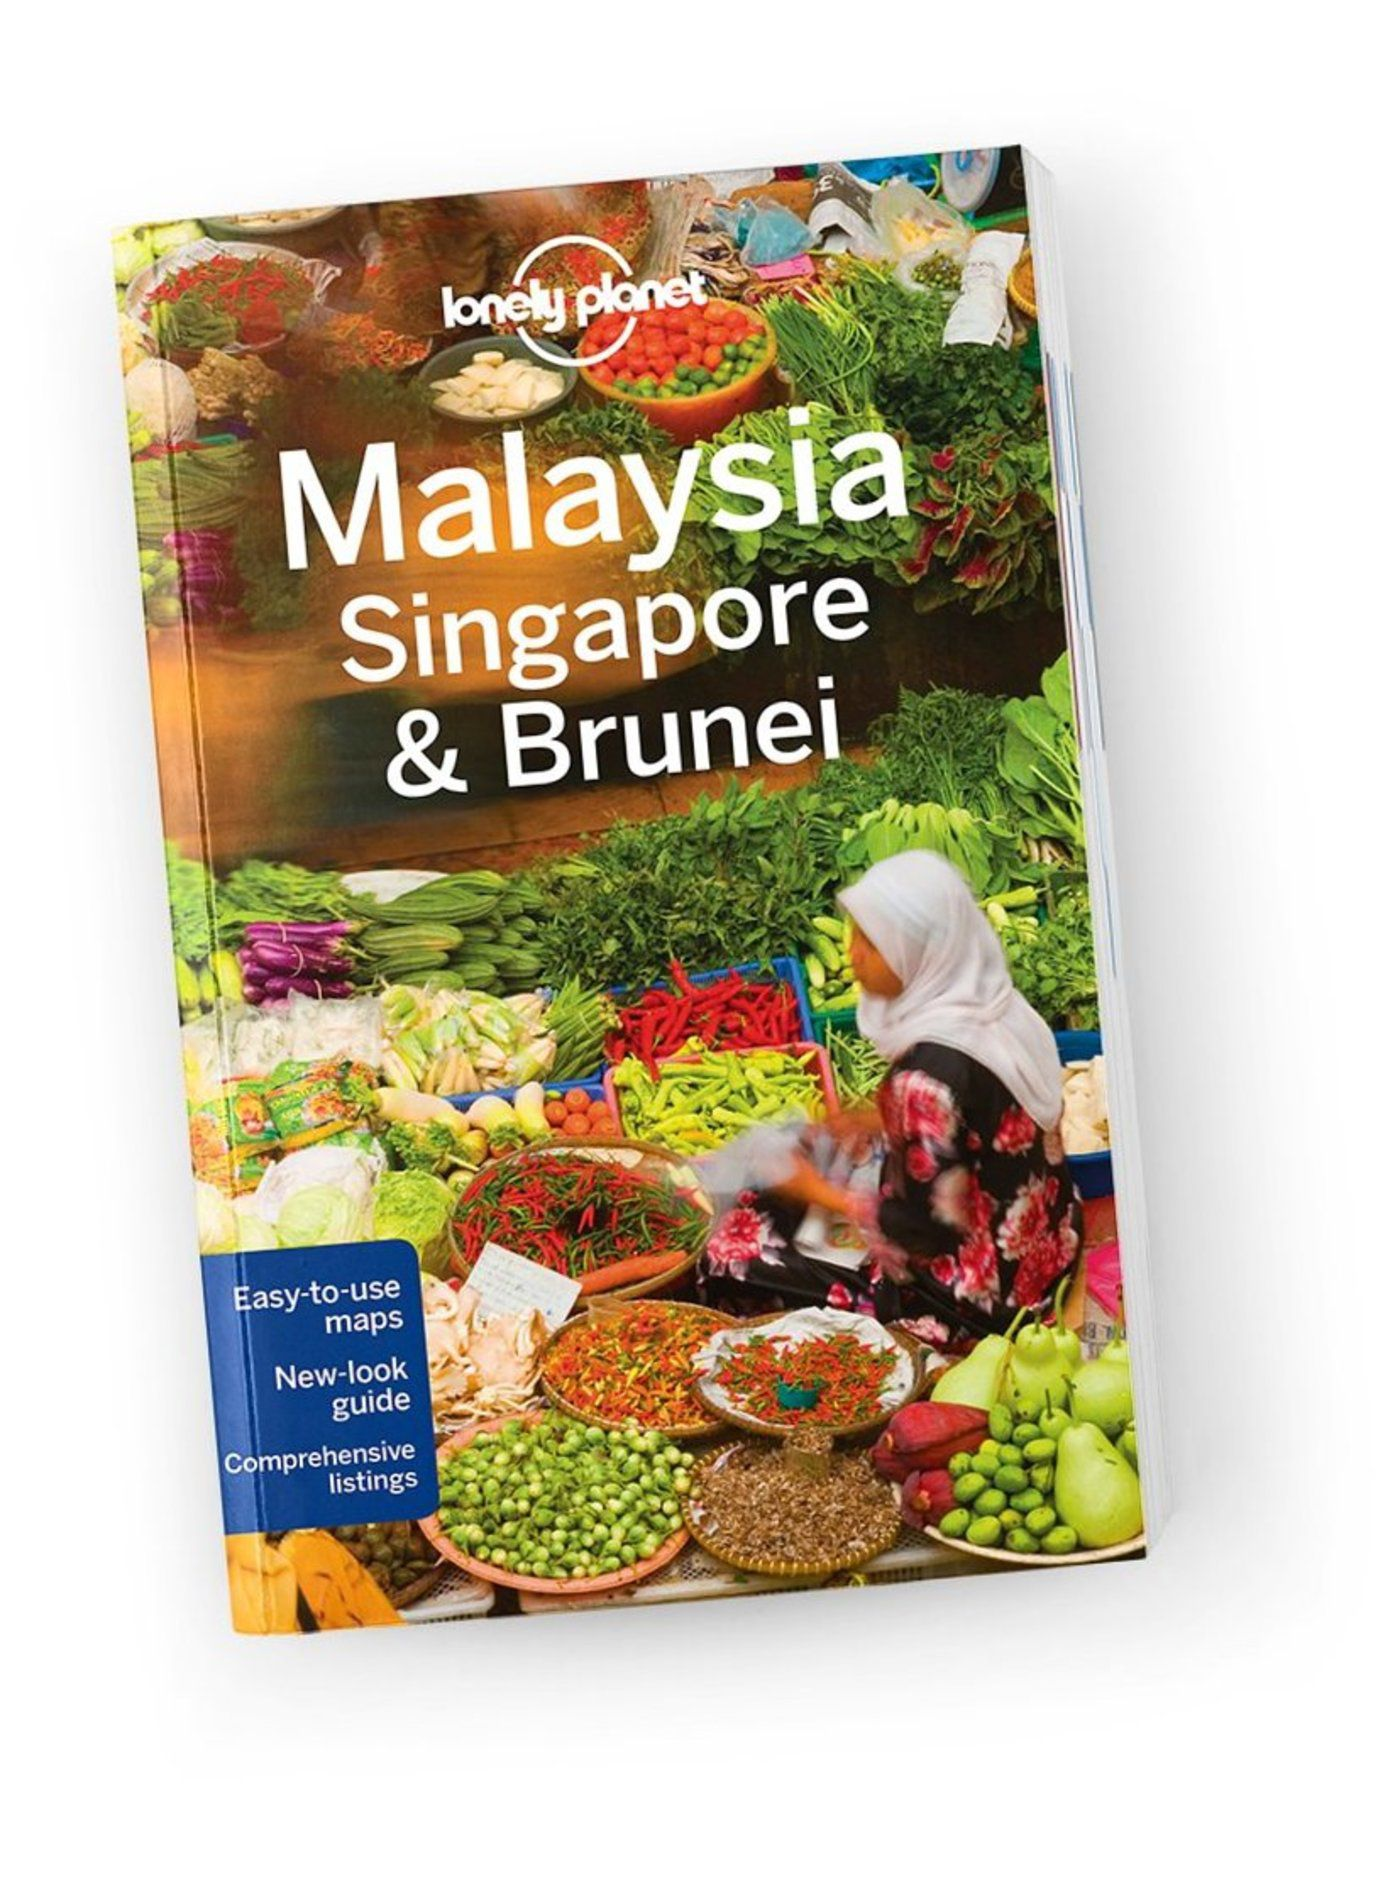 Malaysia, Singapore & Brunei travel guide, 13th Edition Aug 2016 by Lonely Planet 9781743210291100